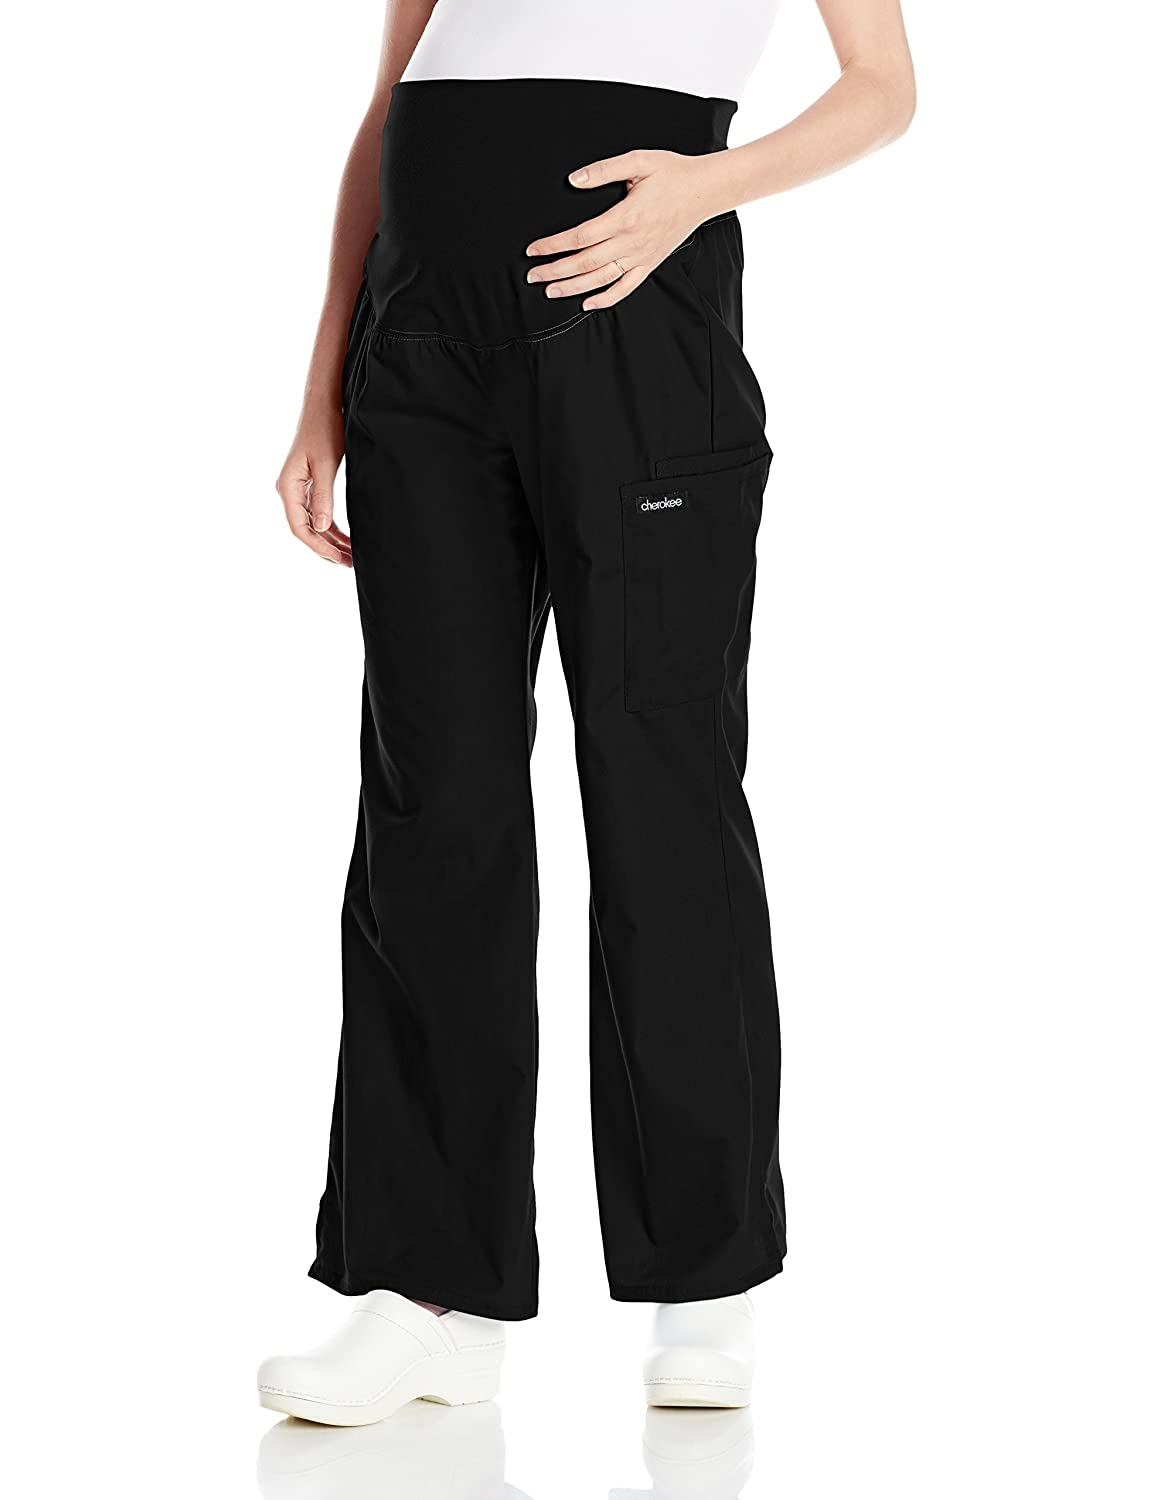 016e7c4aa664f Cherokee Women's Maternity Knit Waist Pull-On Pant: Amazon.ca: Clothing &  Accessories